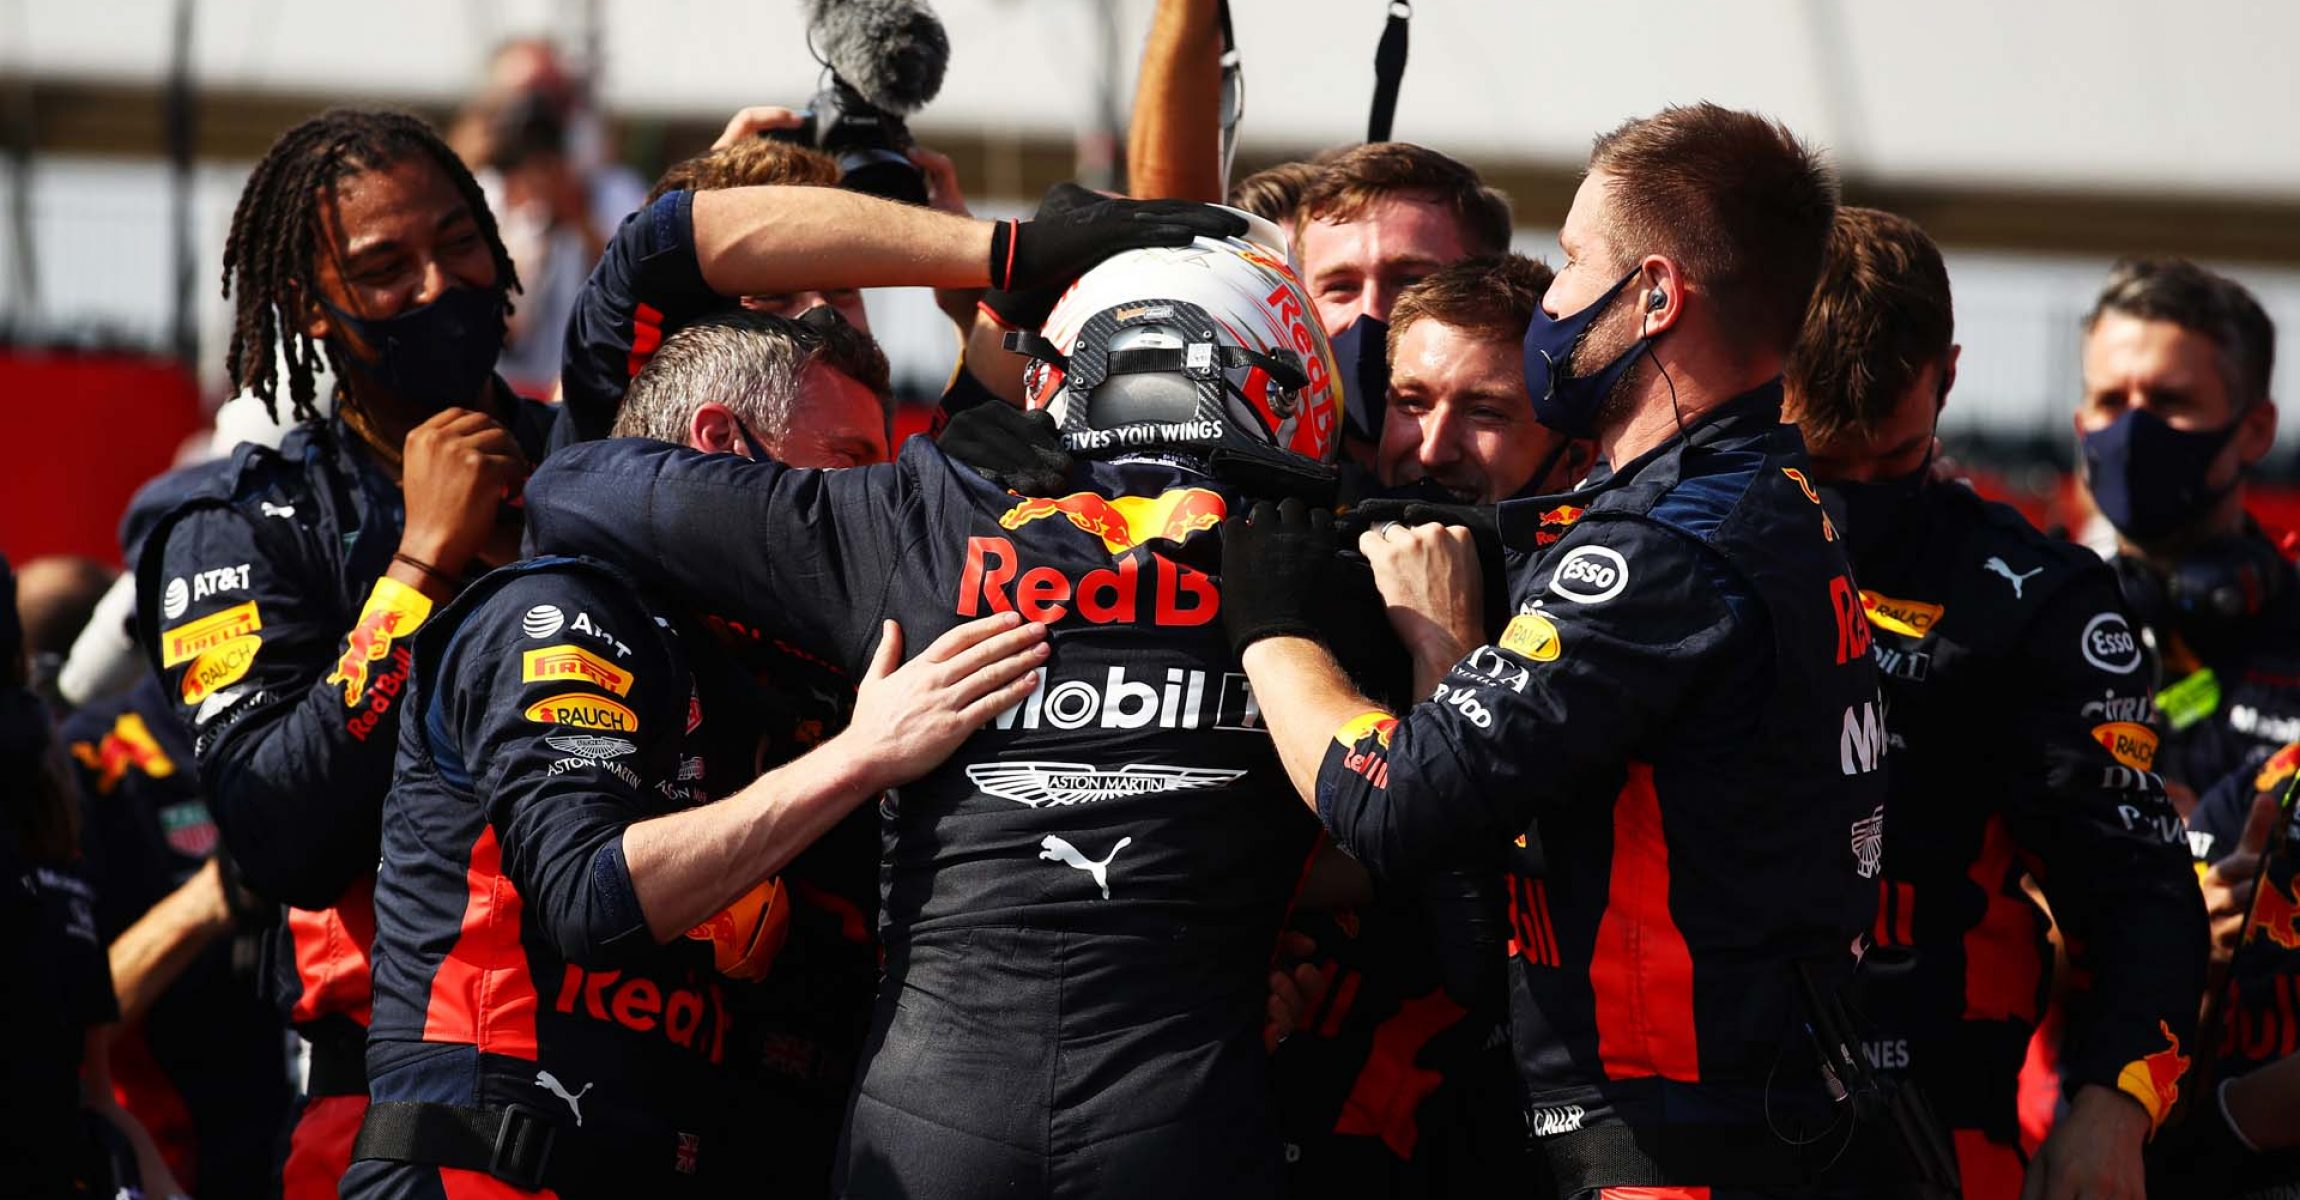 NORTHAMPTON, ENGLAND - AUGUST 09: Race winner Max Verstappen of Netherlands and Red Bull Racing celebrates with teammates in parc ferme during the F1 70th Anniversary Grand Prix at Silverstone on August 09, 2020 in Northampton, England. (Photo by Bryn Lennon/Getty Images)